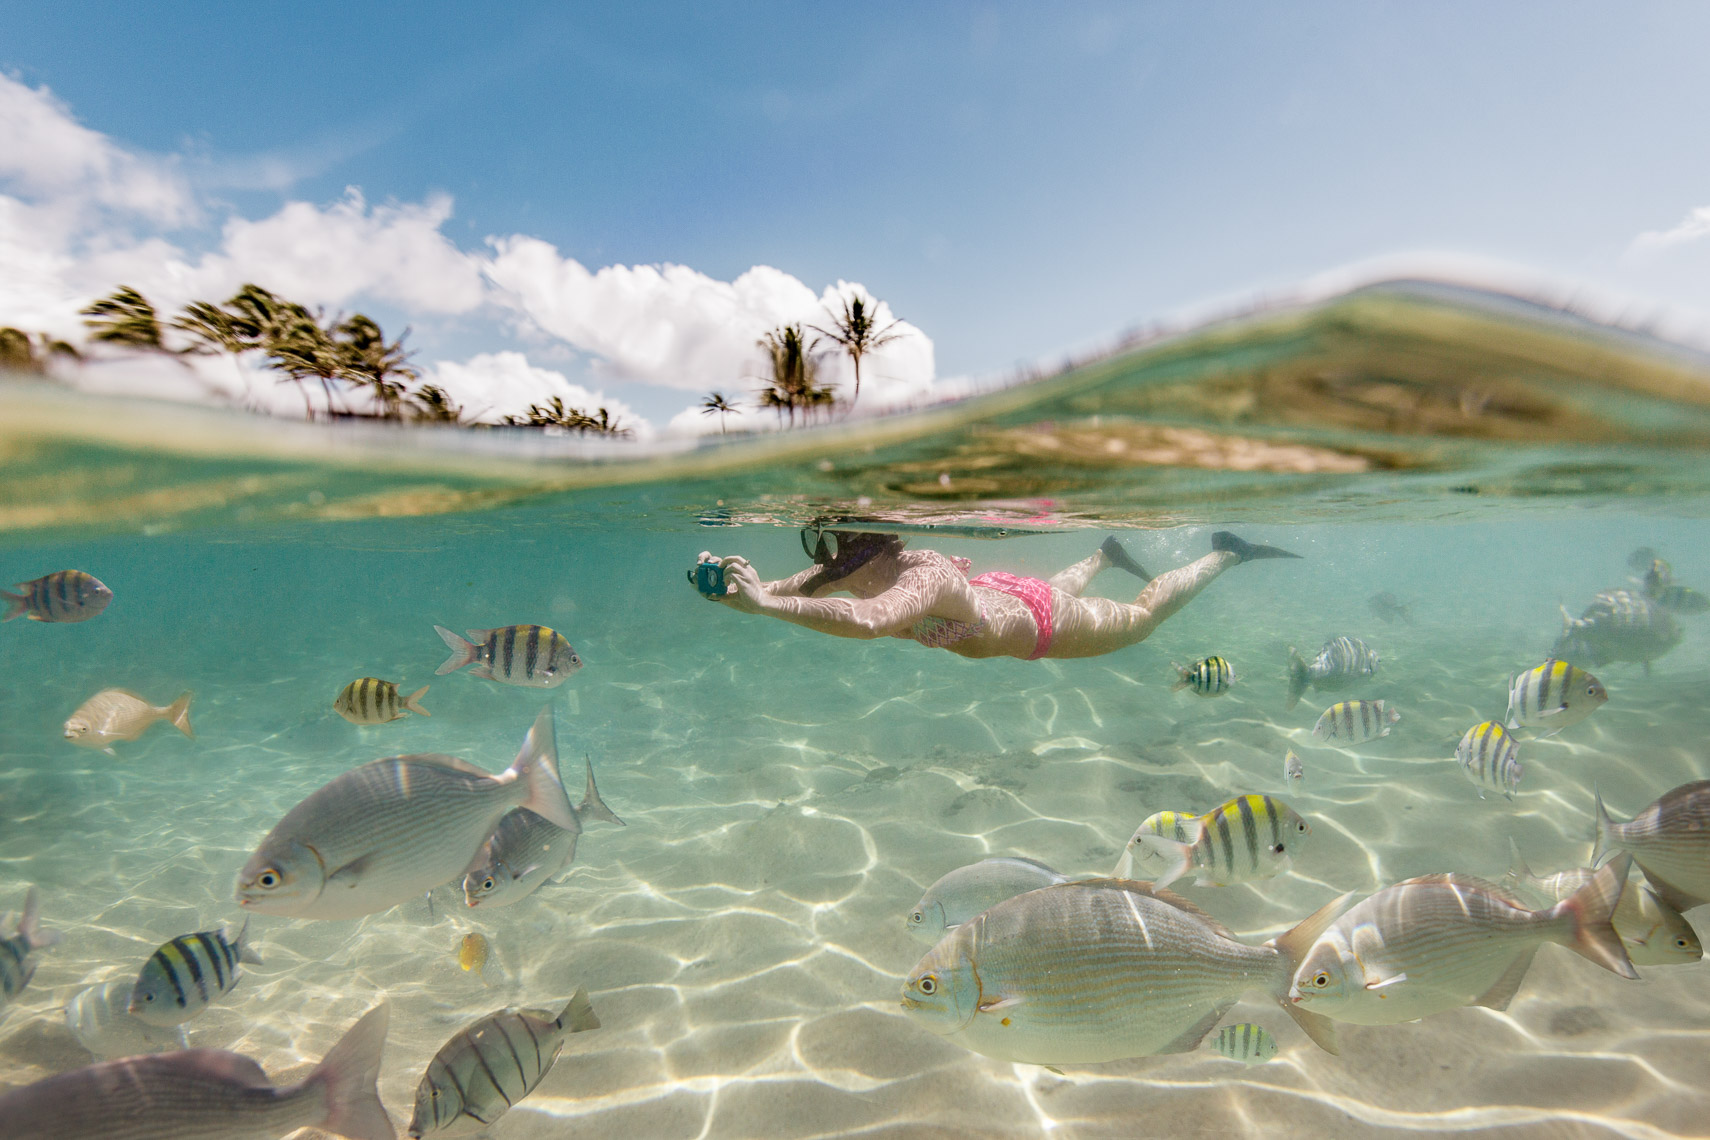 Snorkeling Underwater Photos